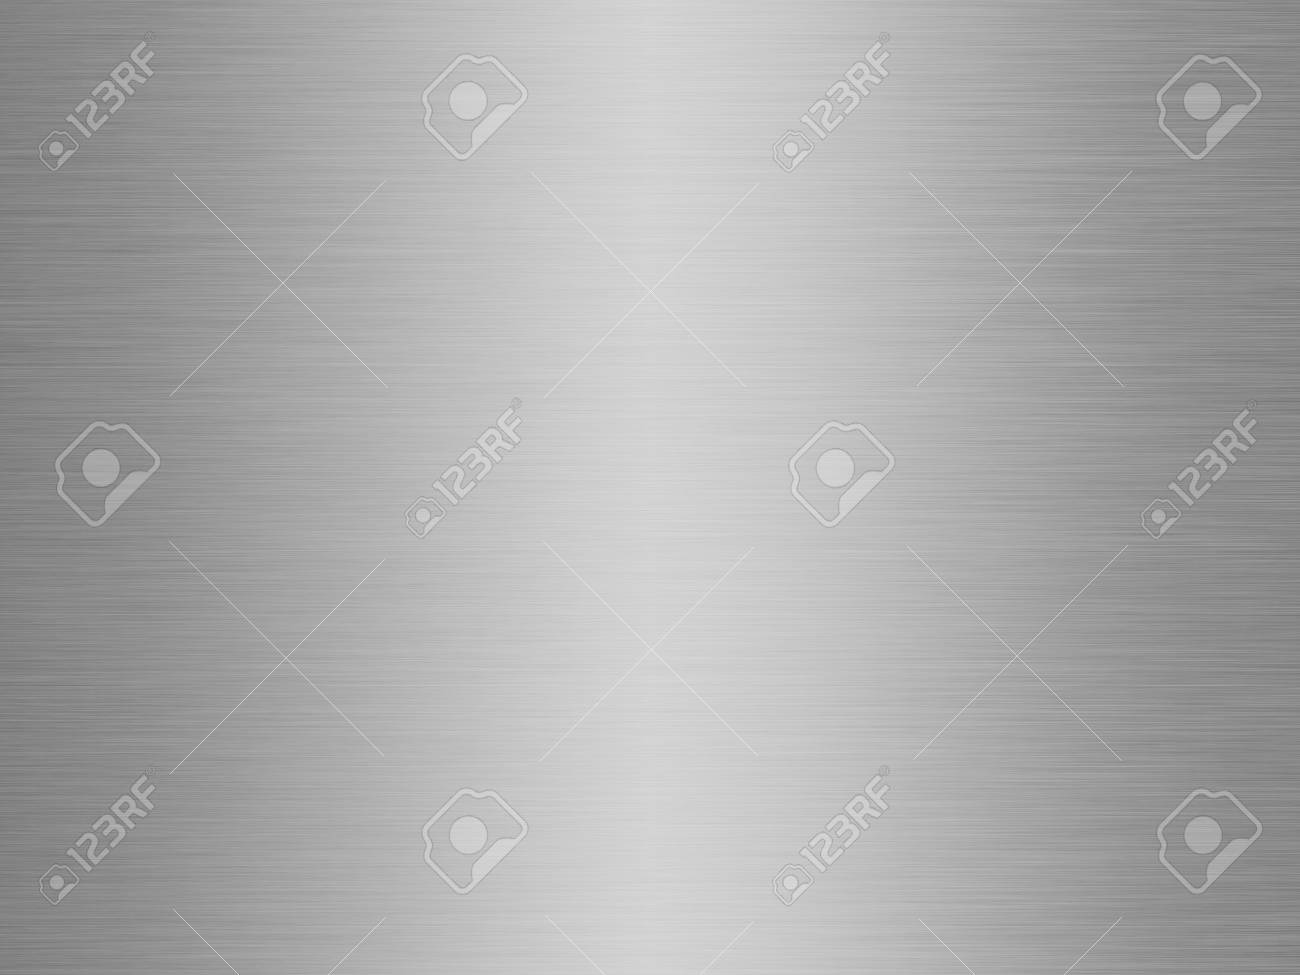 Stainless steel texture or metal texture background Banque d'images - 75076748